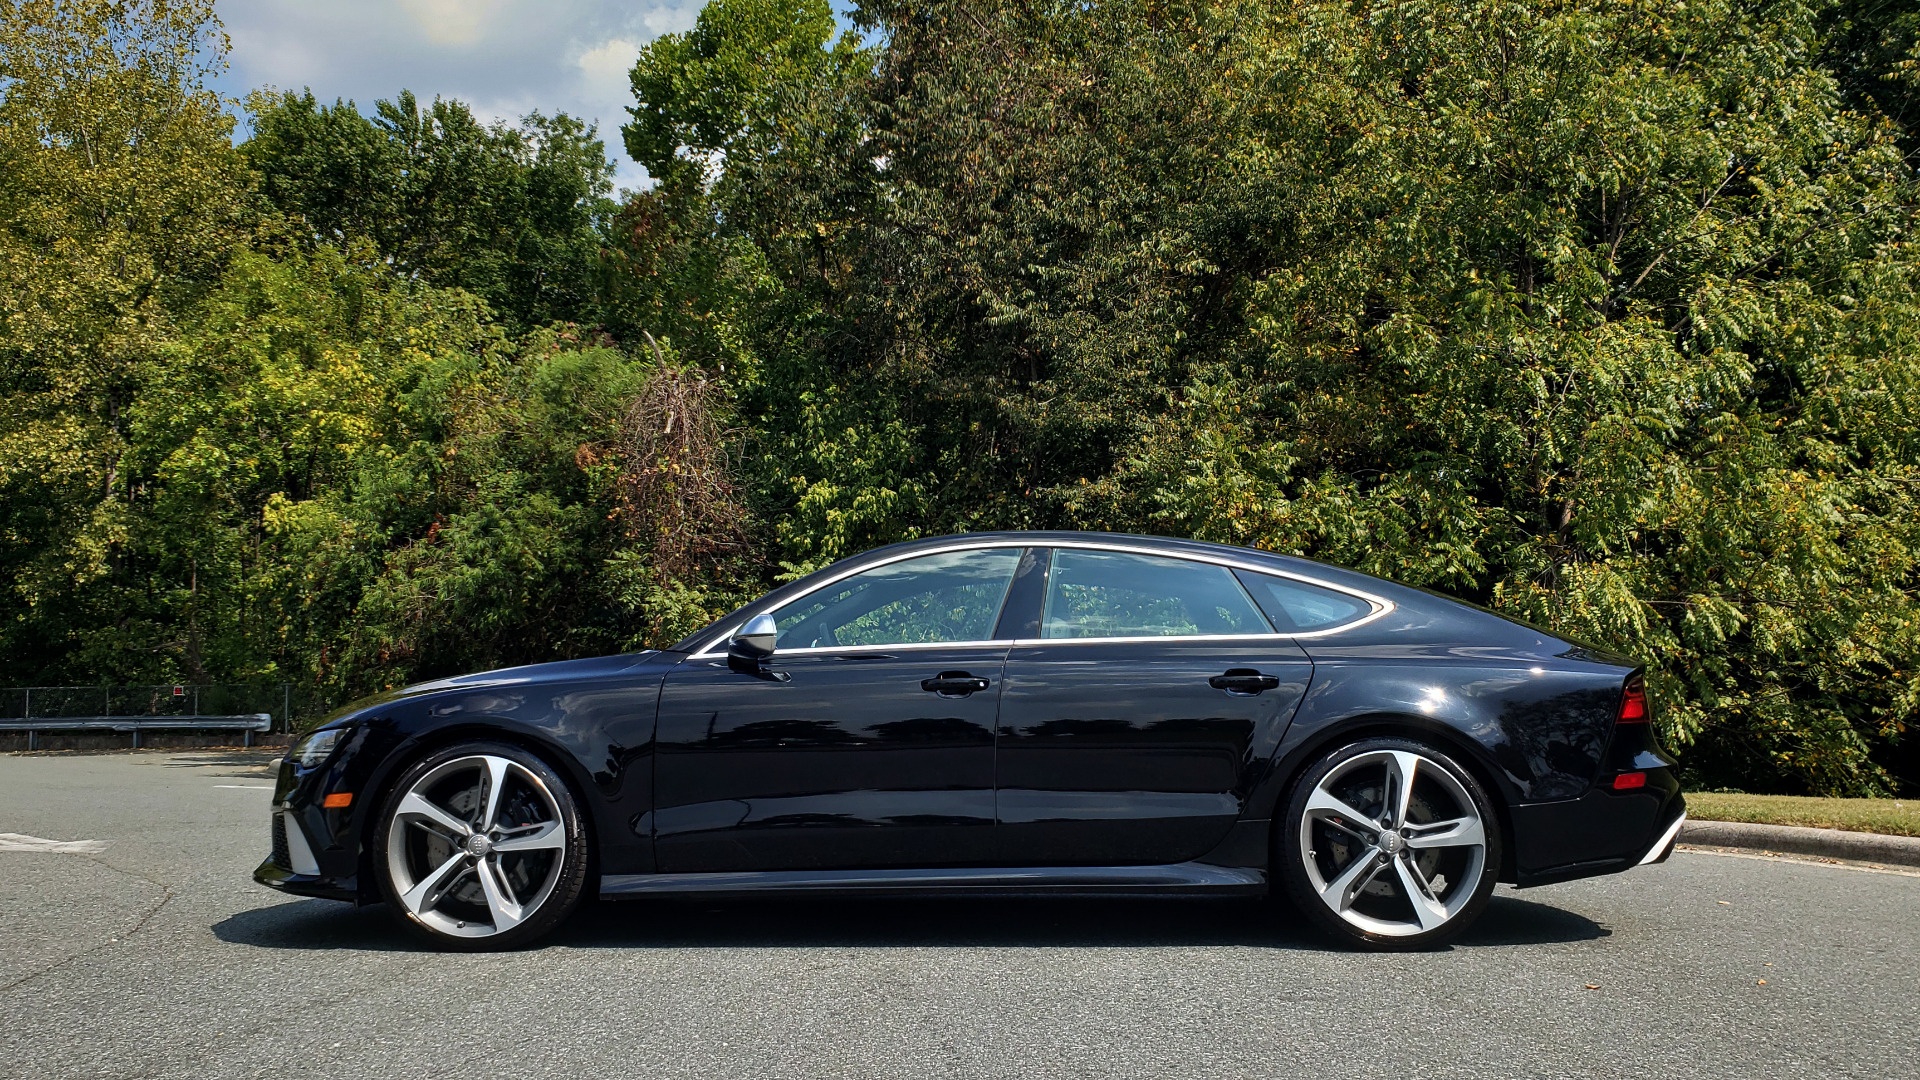 Used 2016 Audi RS 7 PRESTIGE / NAV / SUNROOF / BOSE / CAMERA / HTD STS for sale Sold at Formula Imports in Charlotte NC 28227 5